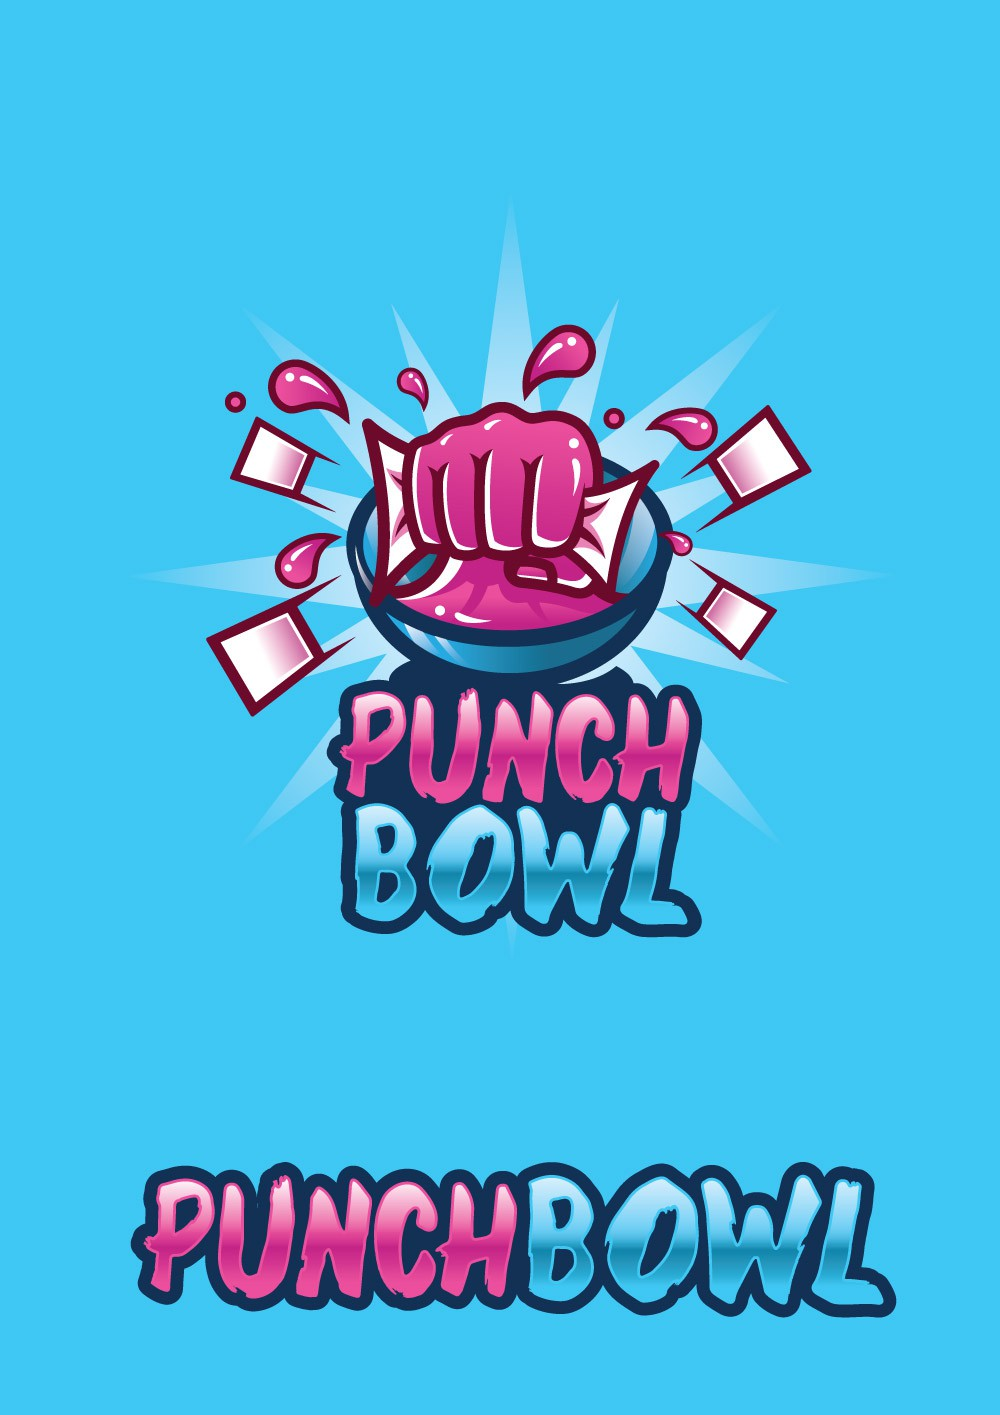 New card game with a PUNCH!